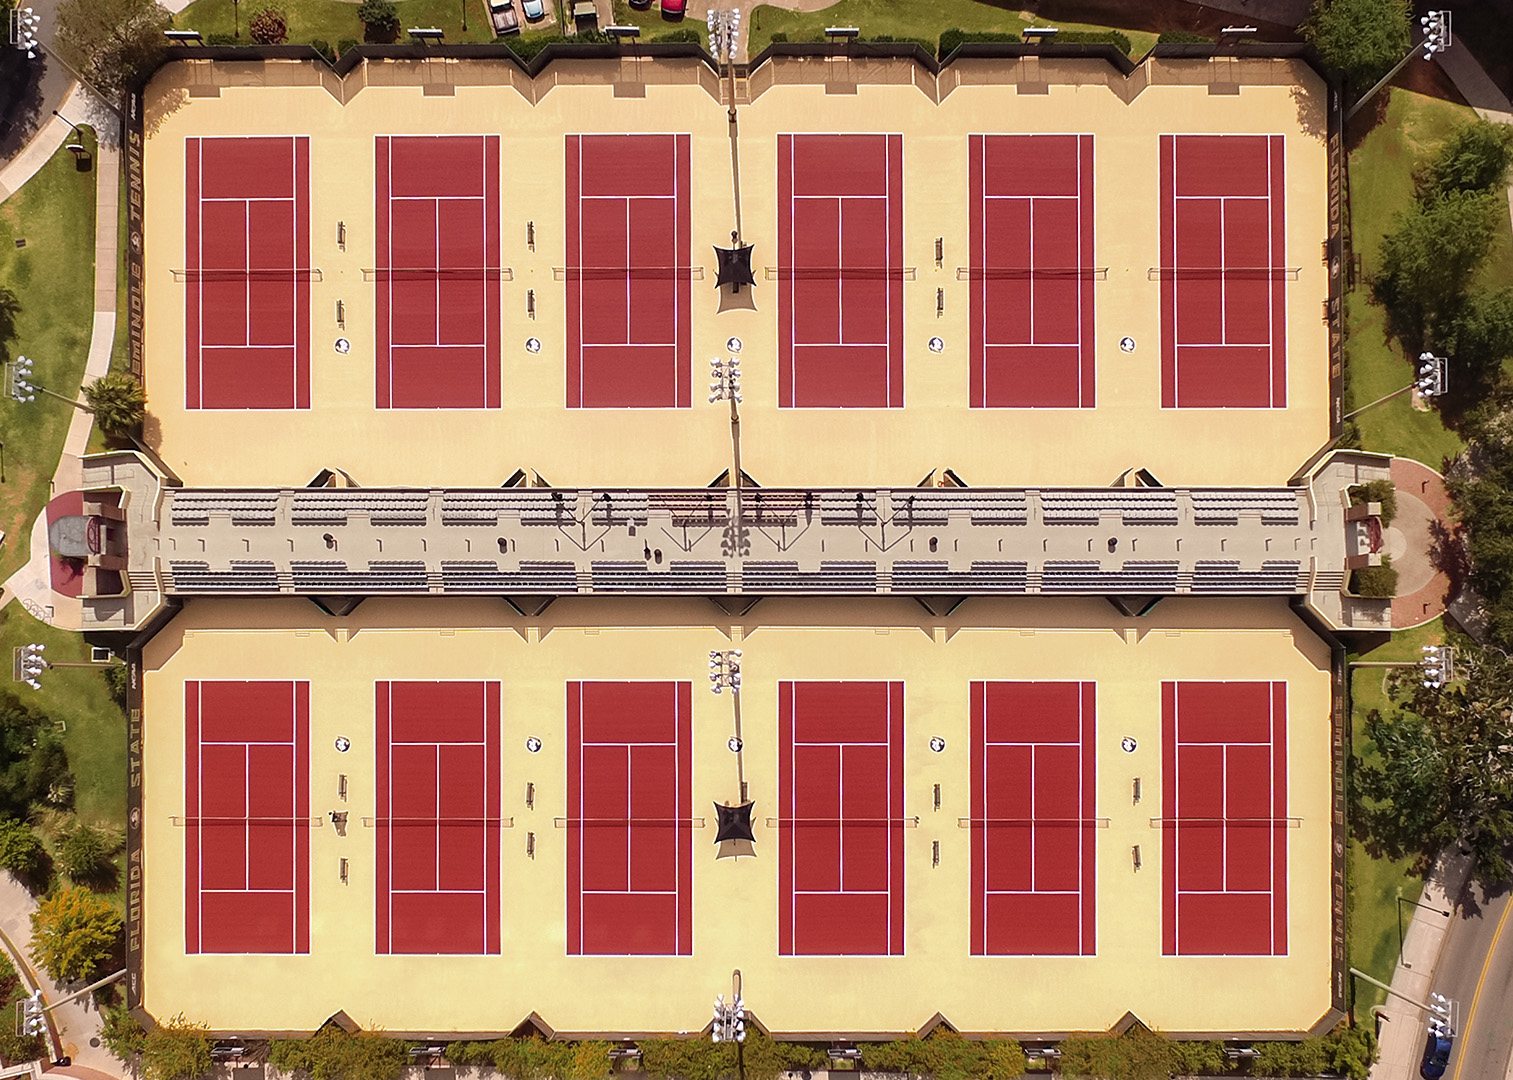 Overhead-Image-of-Courts